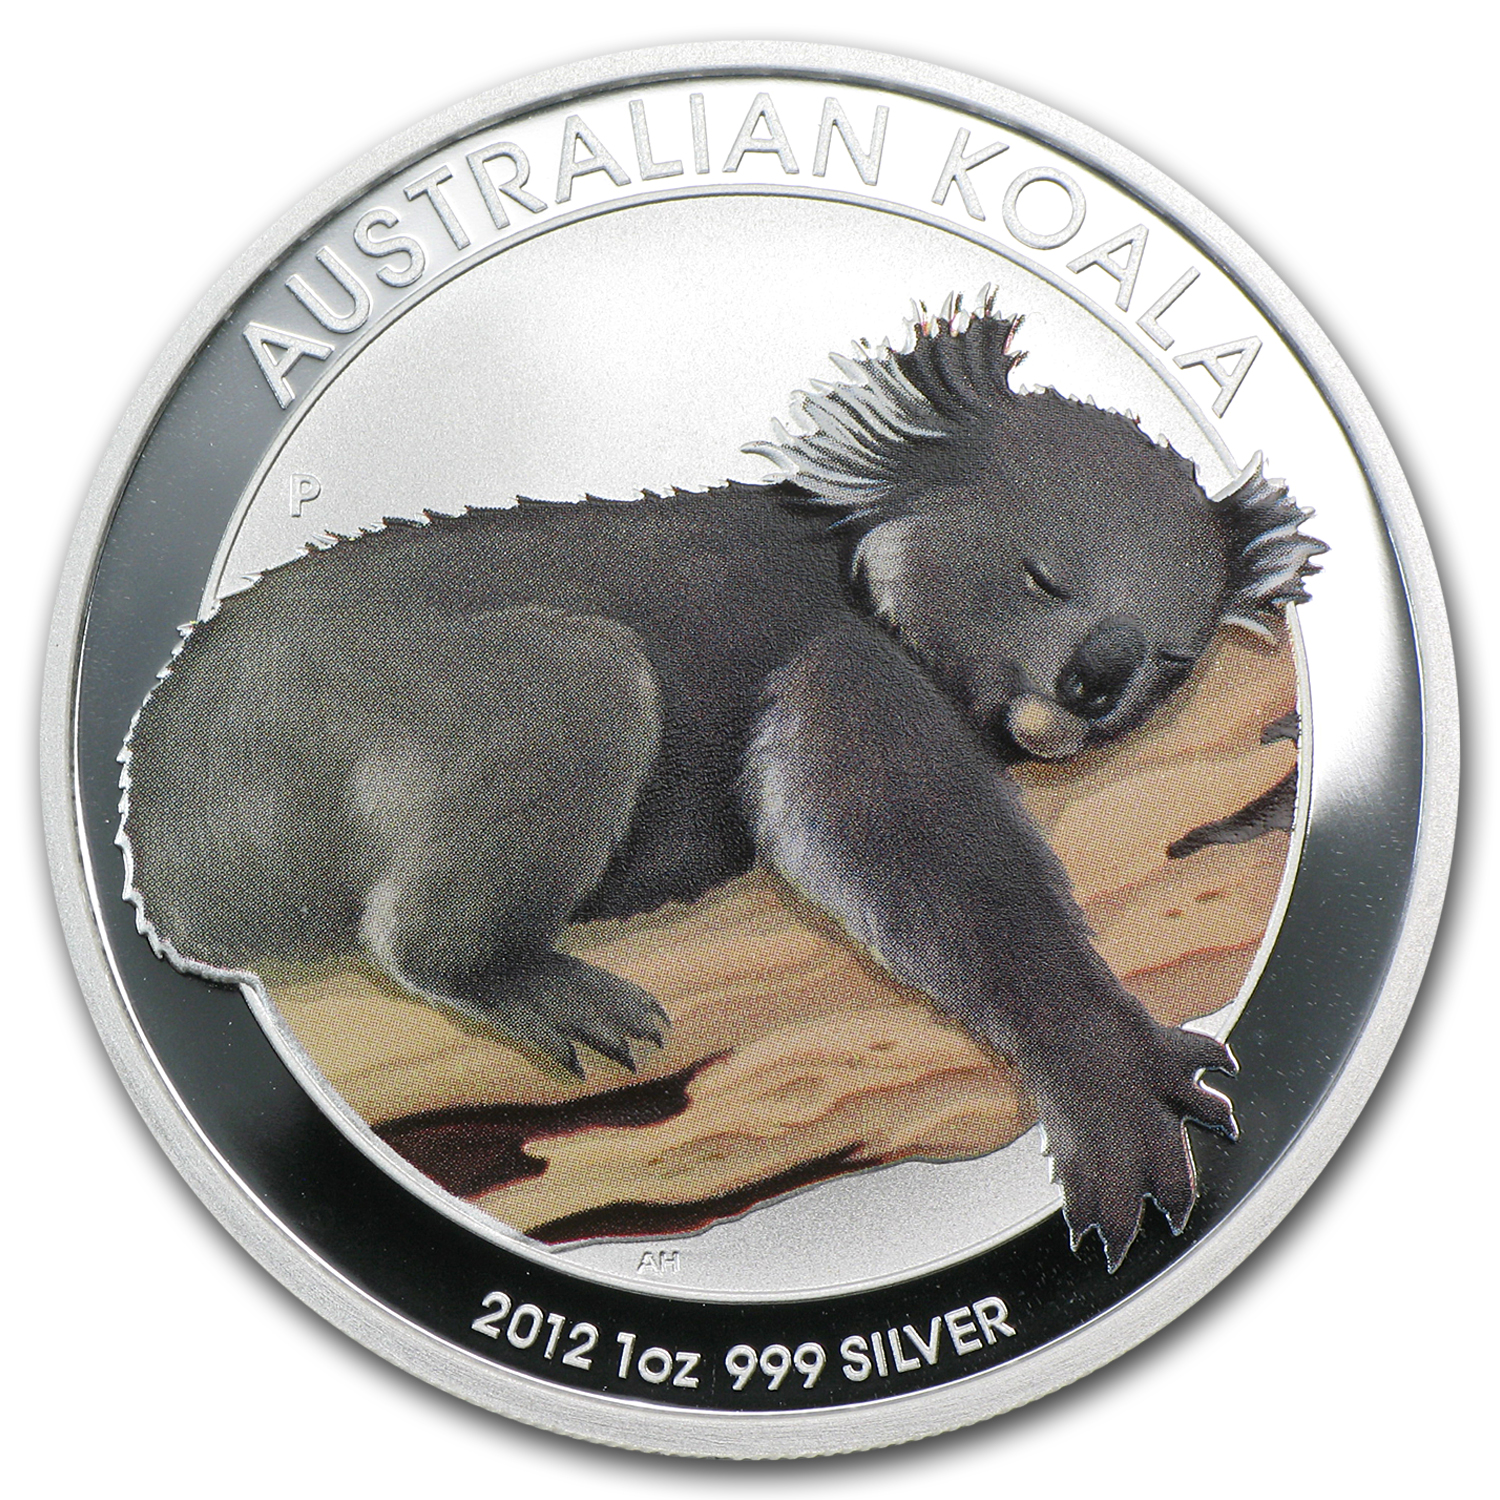 2012 1 oz Silver Australian Koala Colorized (In Capsule)